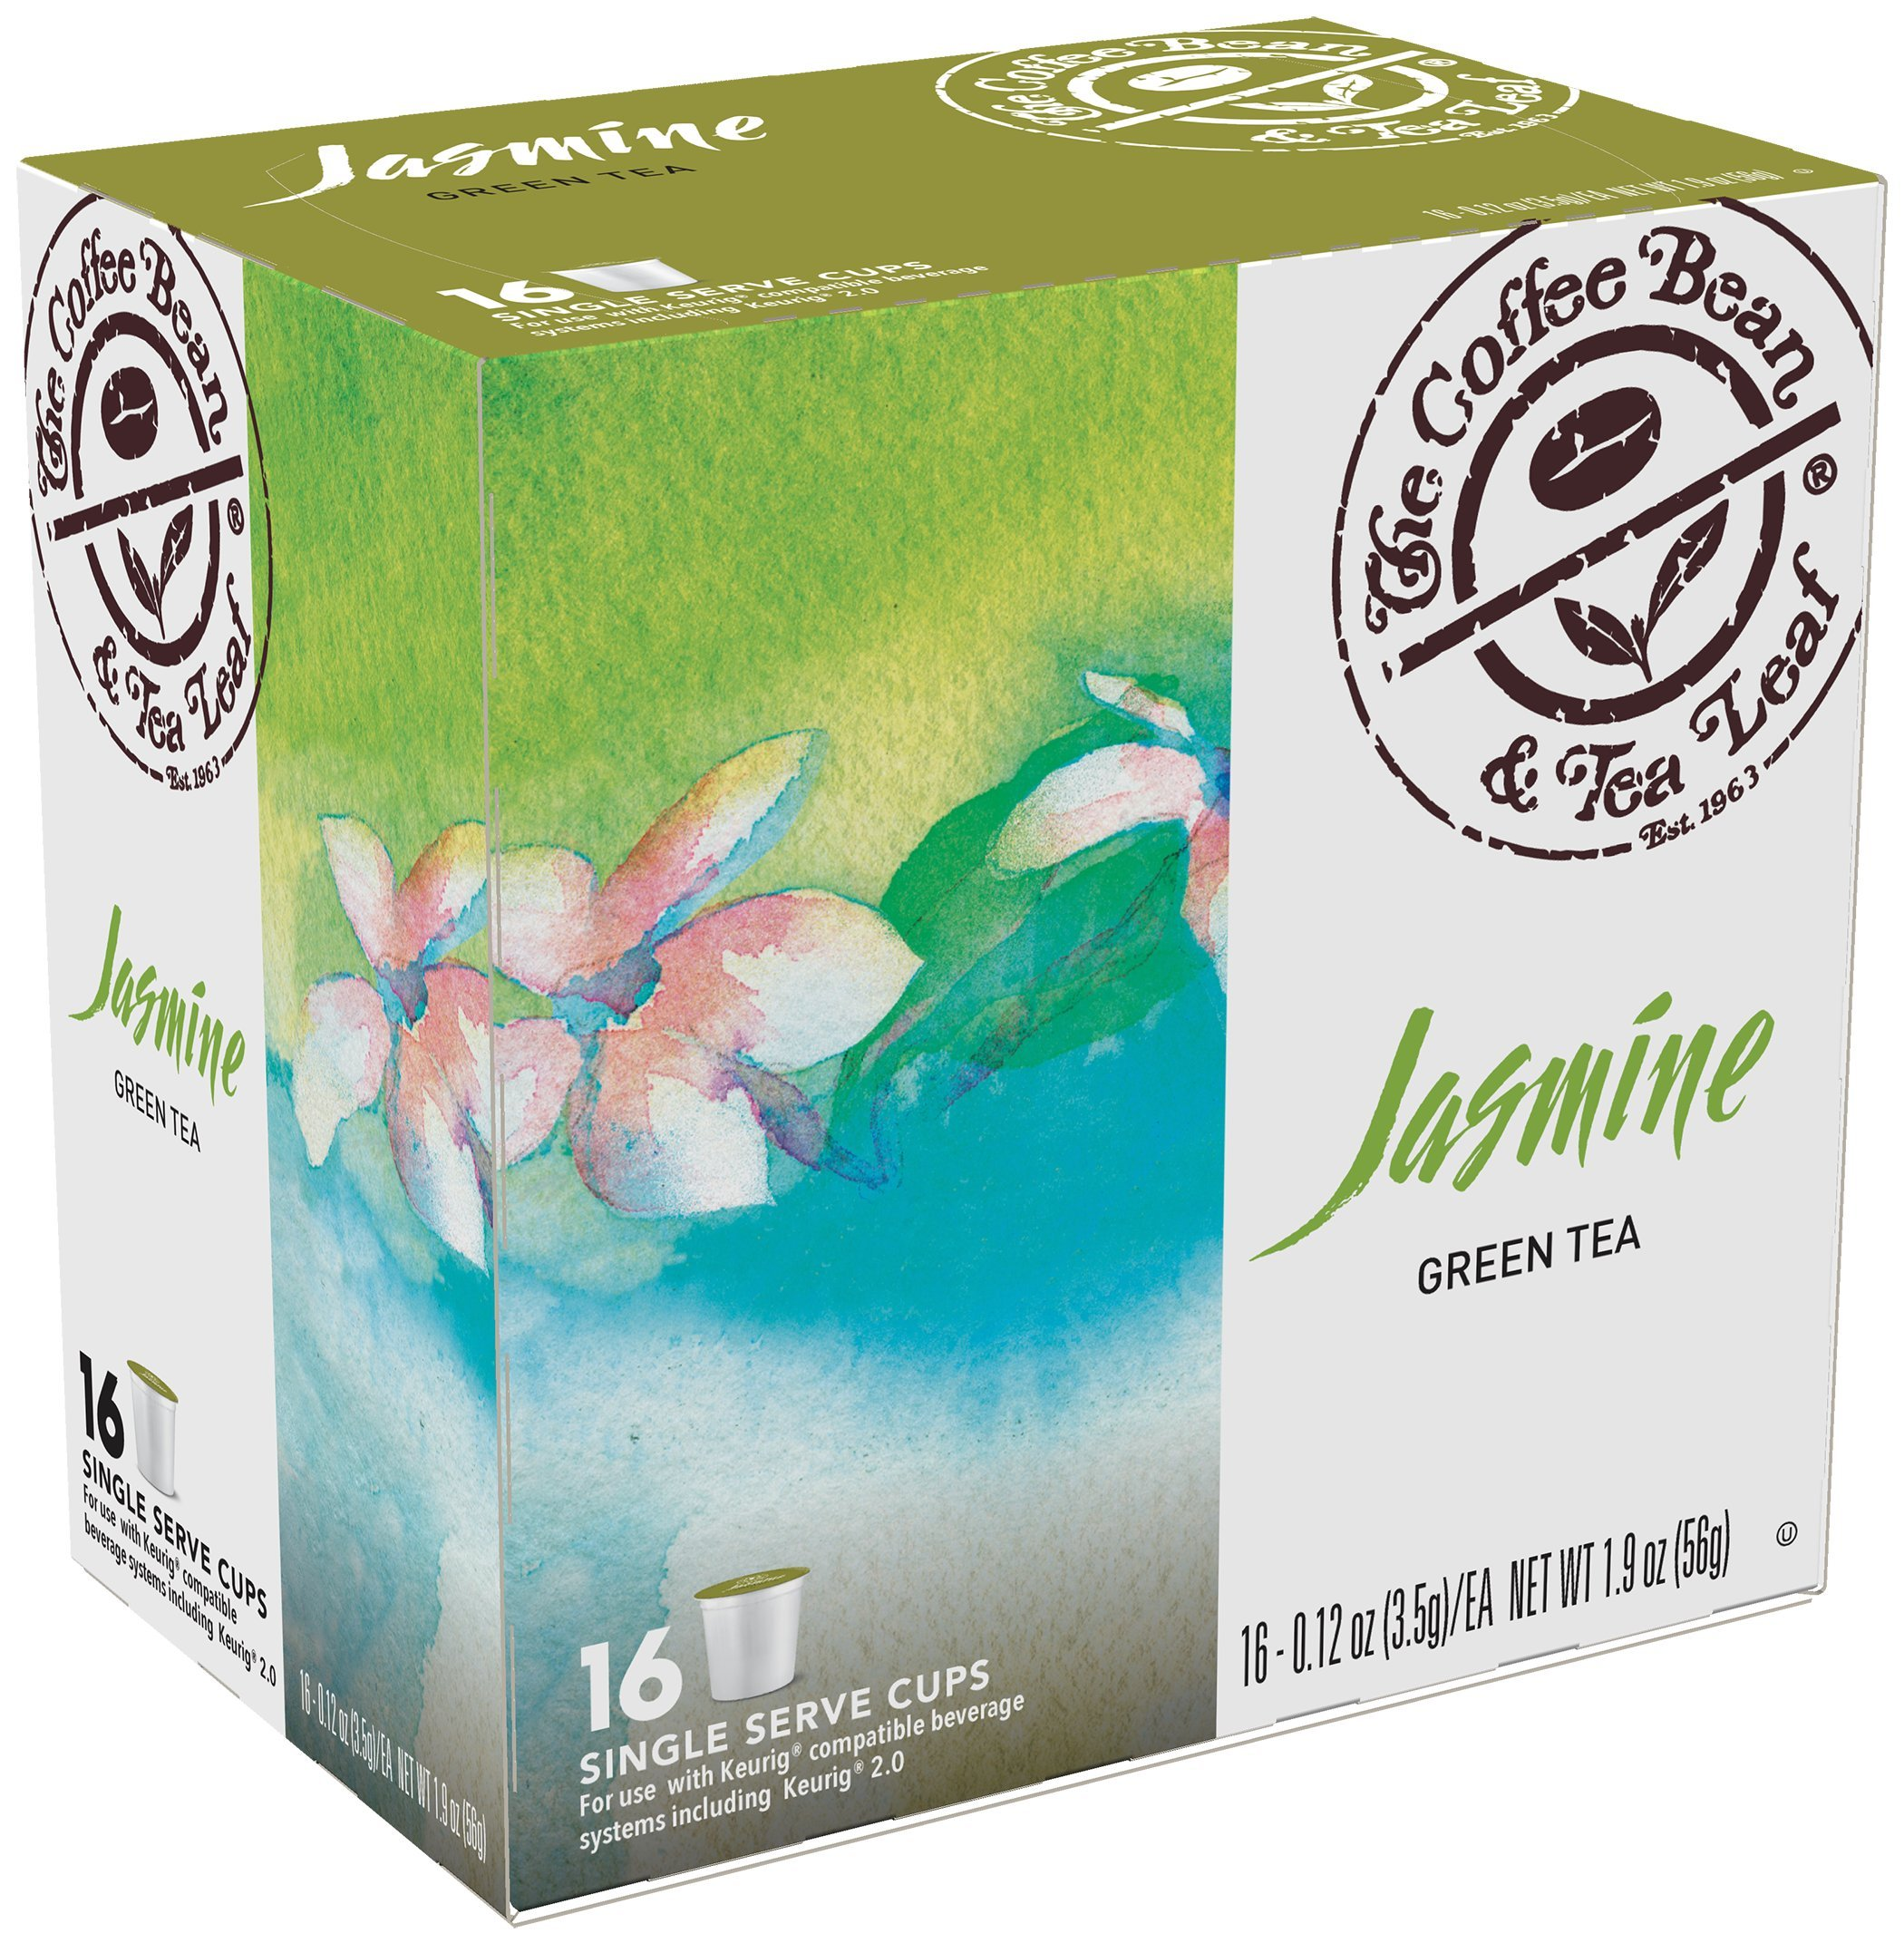 Coffee Bean & Tea Leaf Single Serve Tea Cups, Jasmine Green, 16 Count (Pack of 4) by Coffee Bean & Tea Leaf